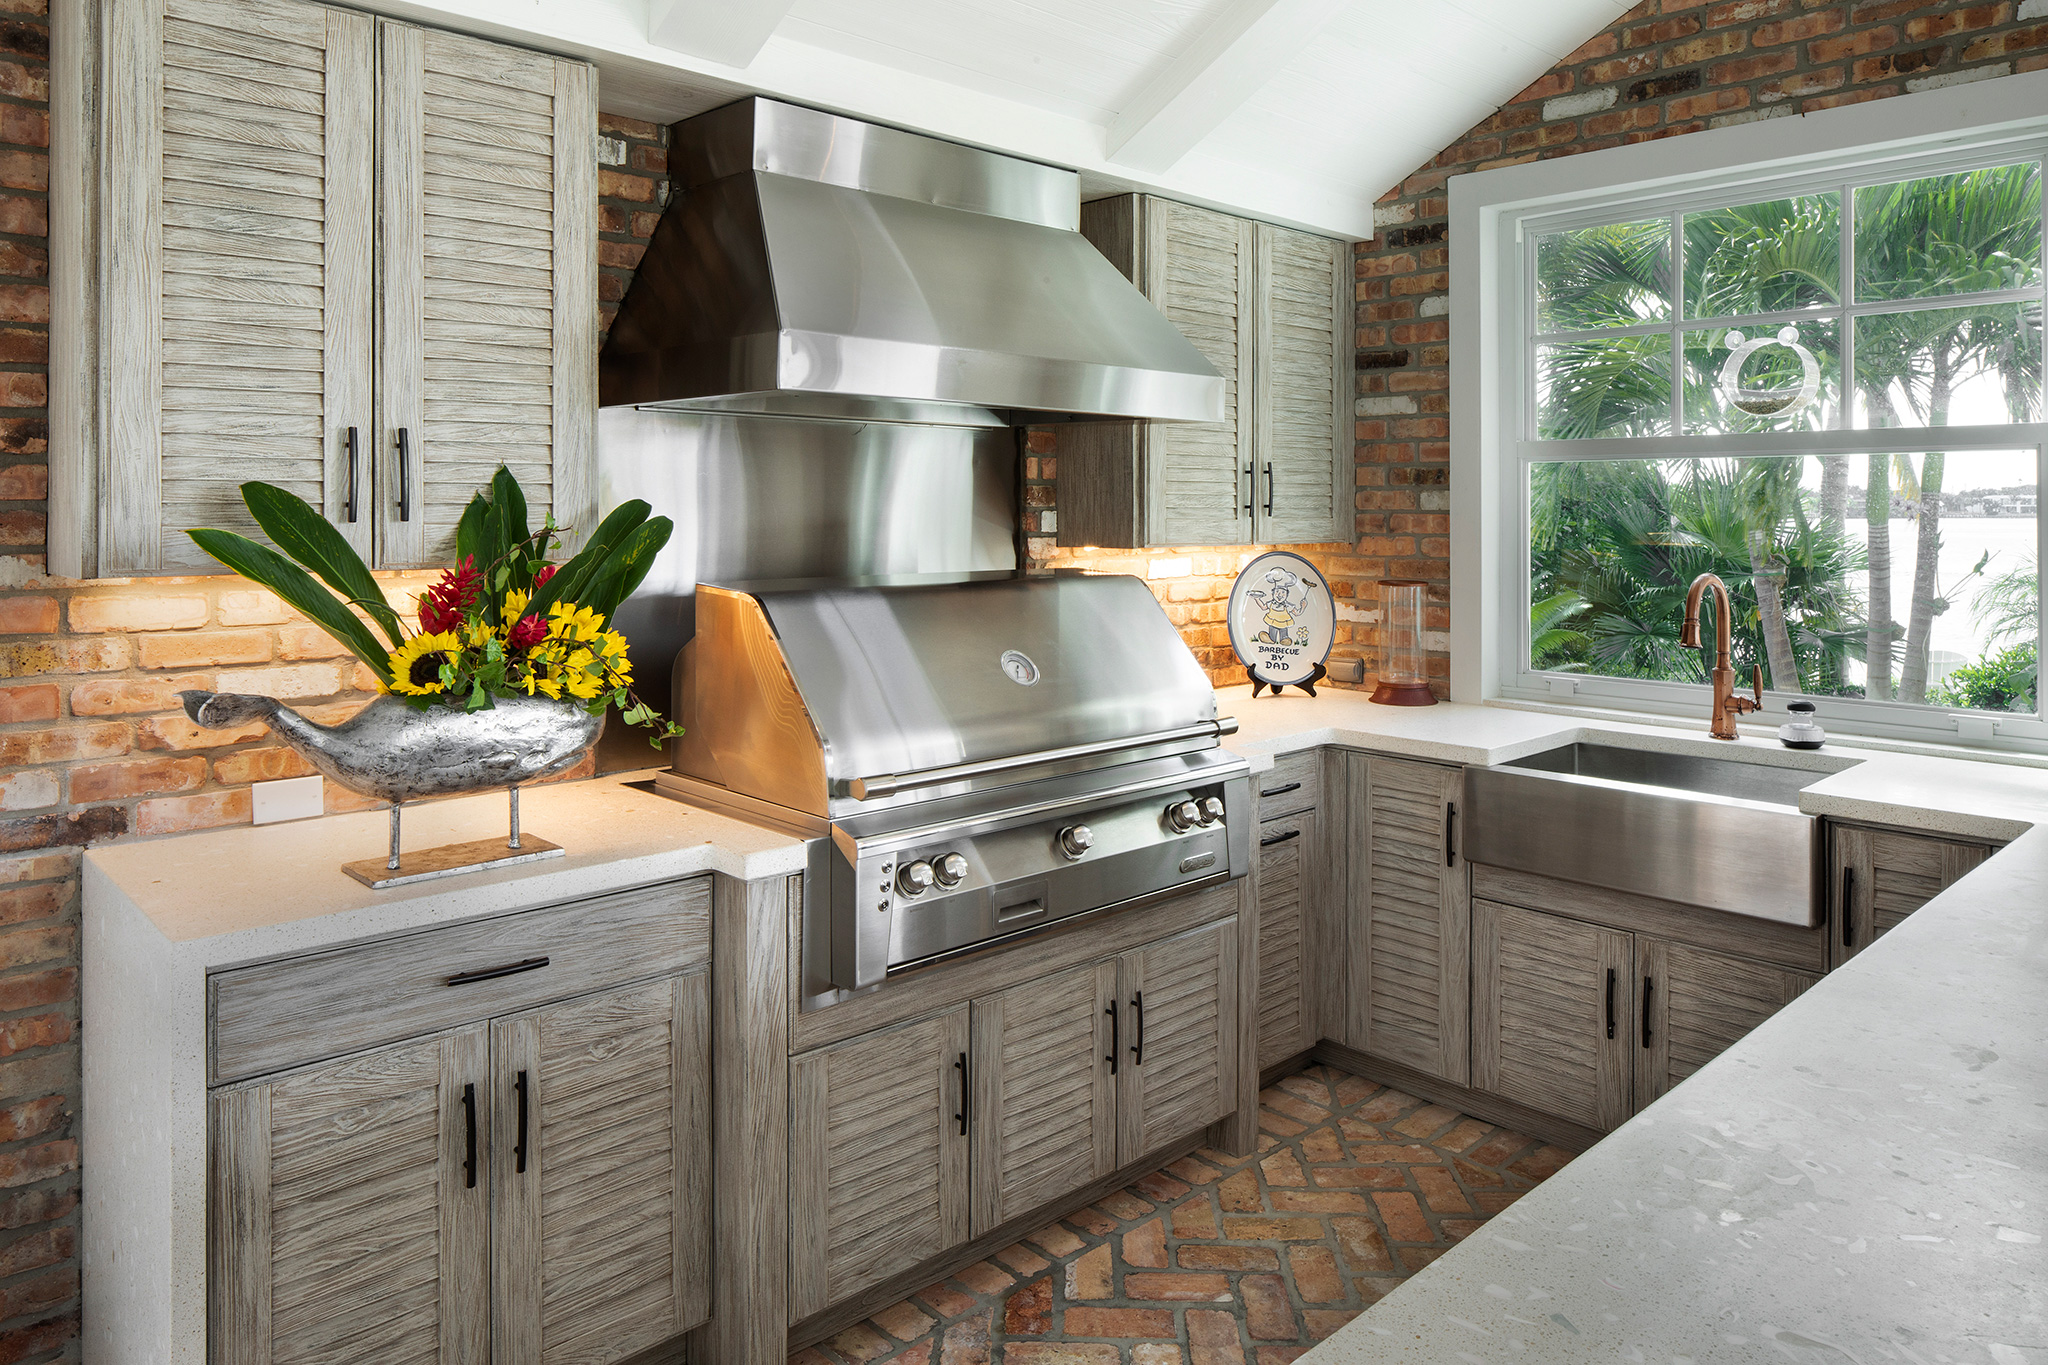 The Different Types of Outdoor Kitchen Materials - 4 Life ...